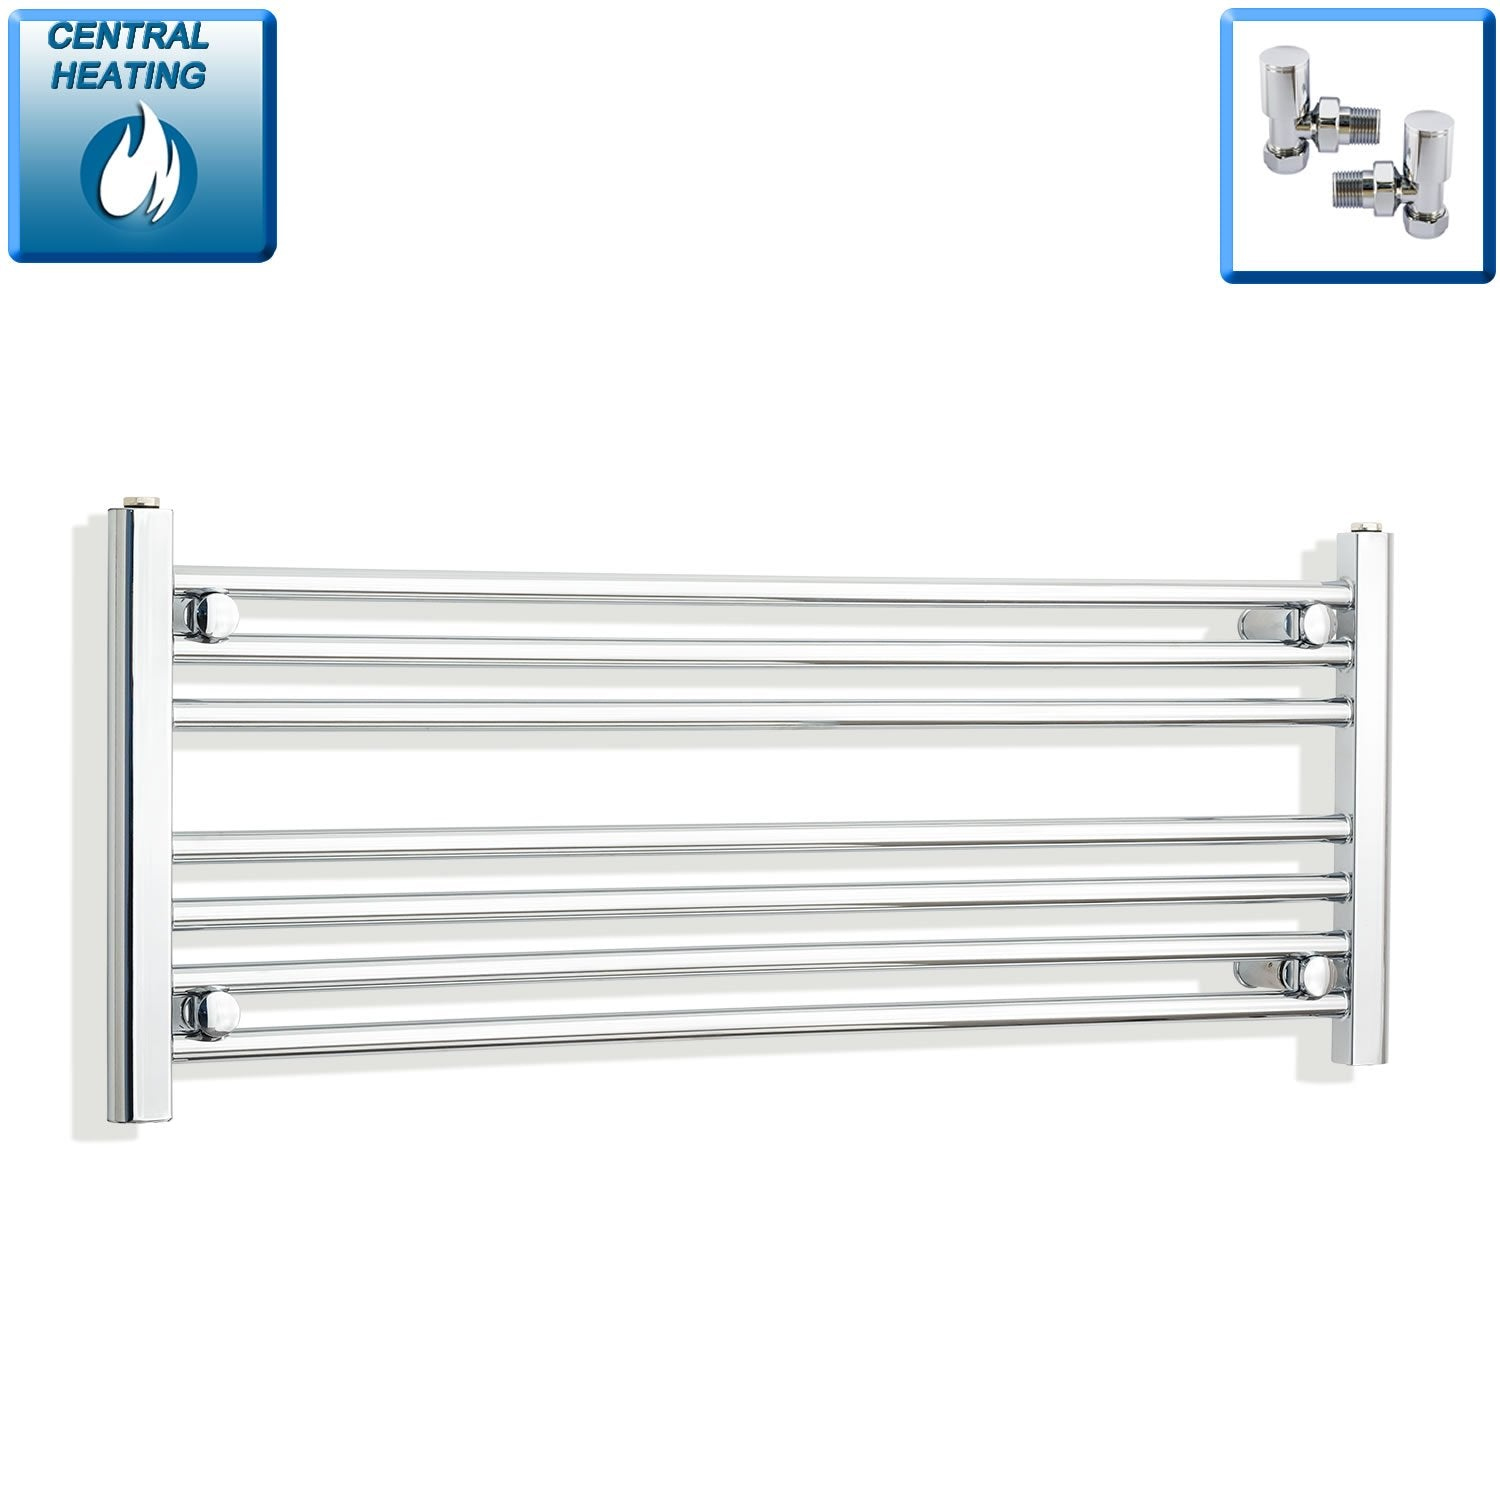 1000mm Wide 400mm High Flat Chrome Heated Towel Rail Radiator HTR,With Angled Valve